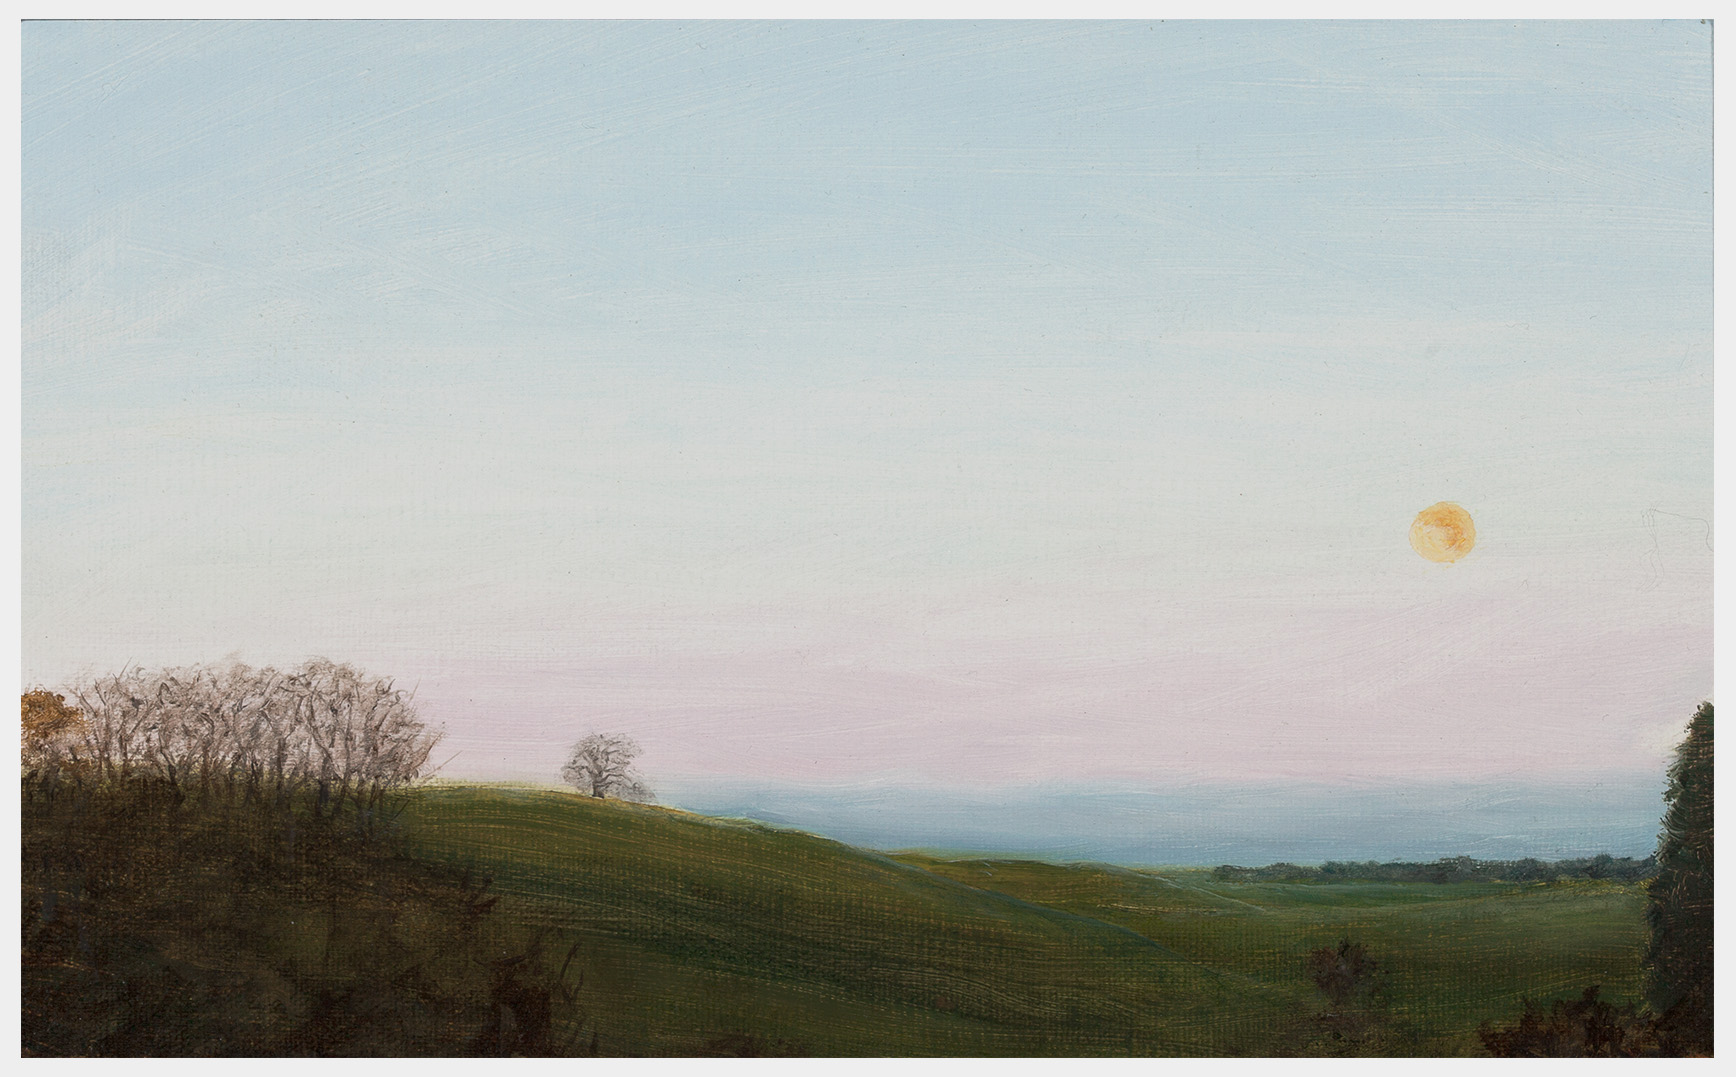 Realistic oil painting of a full moon setting over a landscape of fields and trees and distant hills